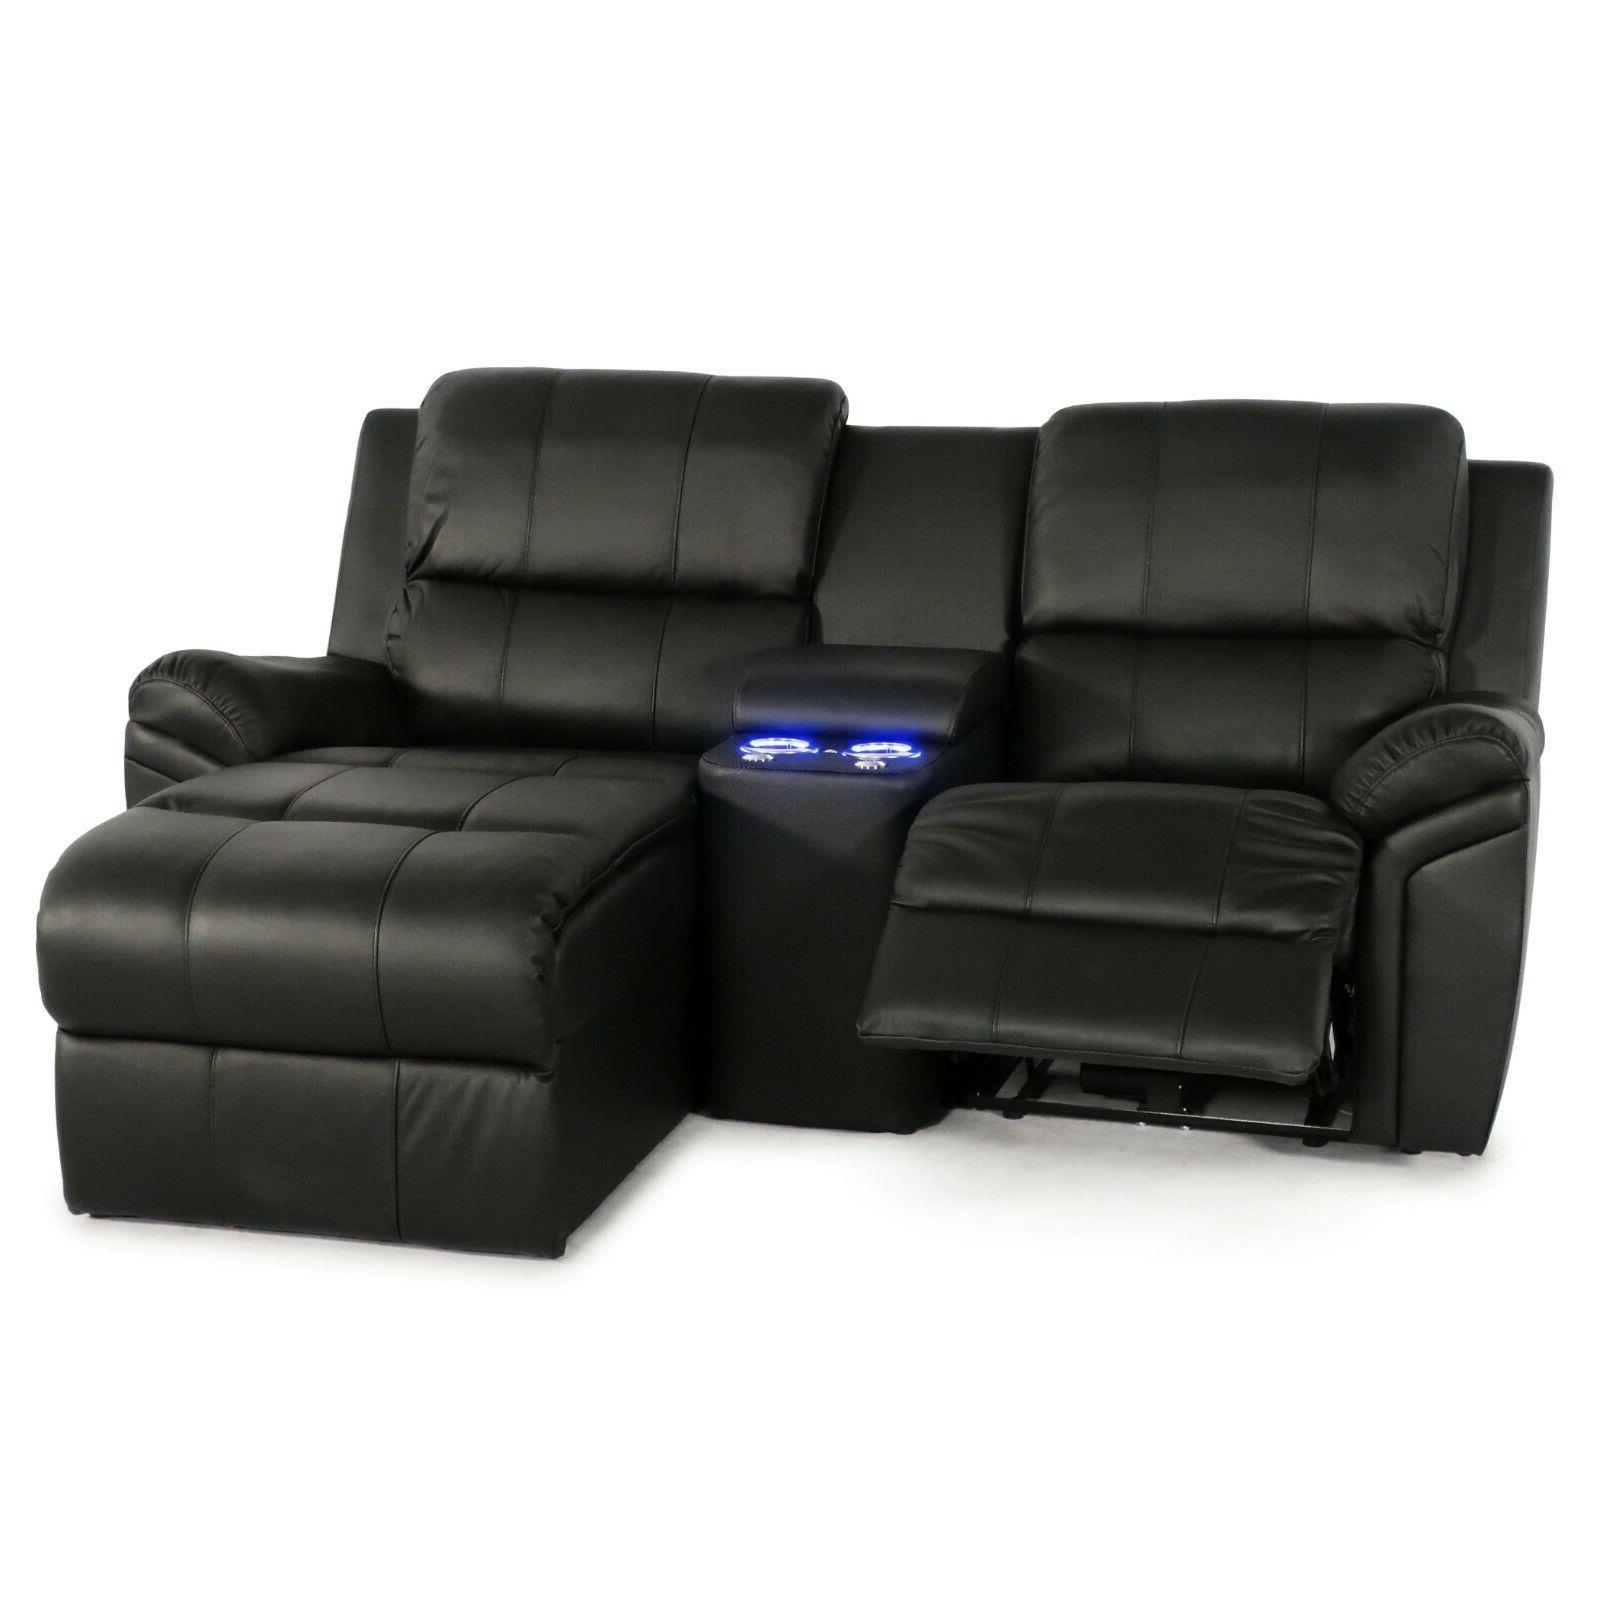 Seatcraft Leather Black Home